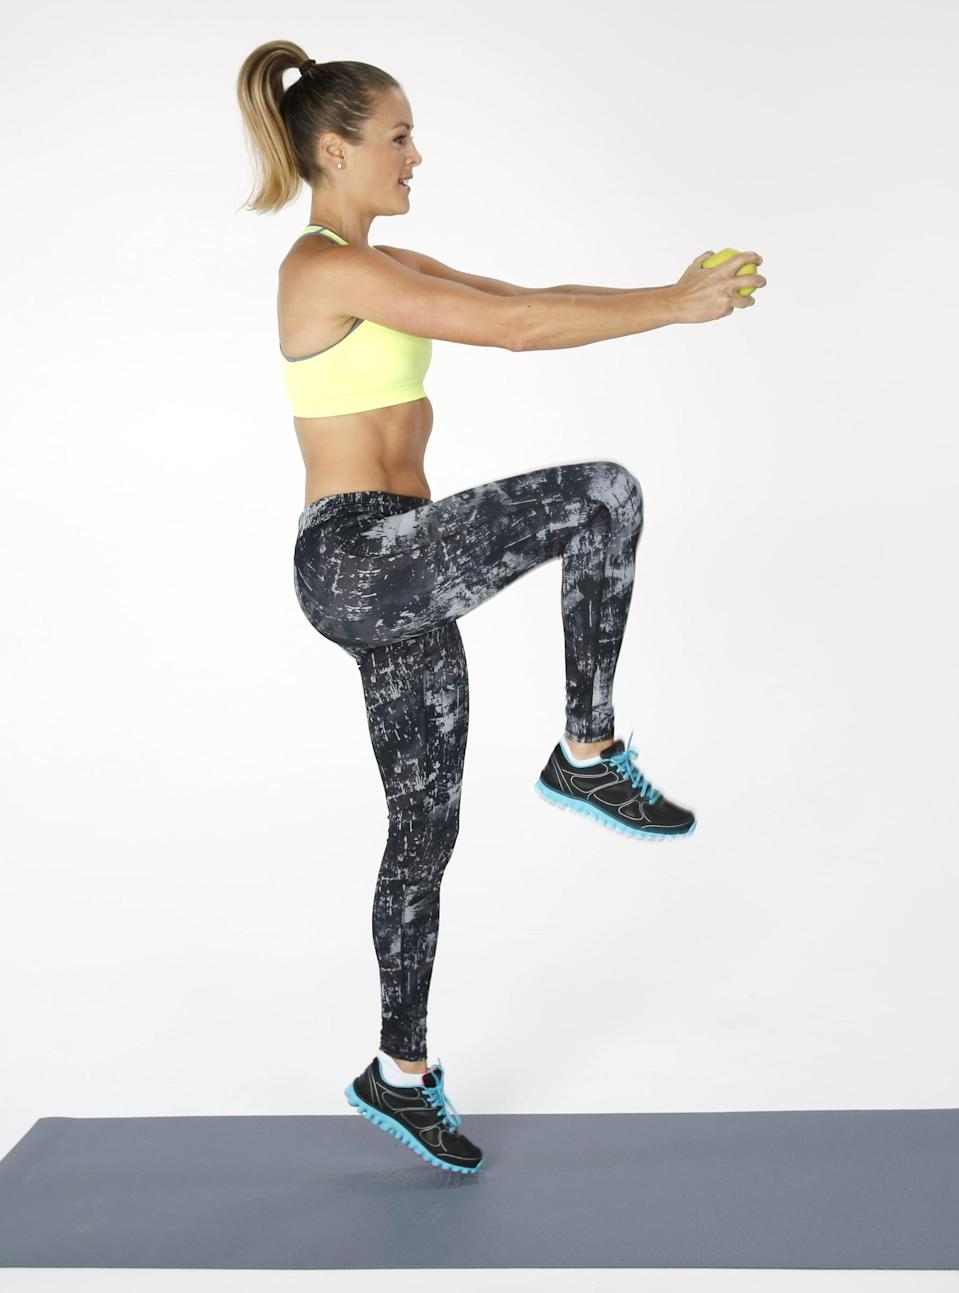 <ul> <li>Hold one dumbbell at chest height, and run in place while lifting your knees high to the level of your waist.</li> <li>Engage your abs as the knee comes up, continuing to run in place.</li> </ul>